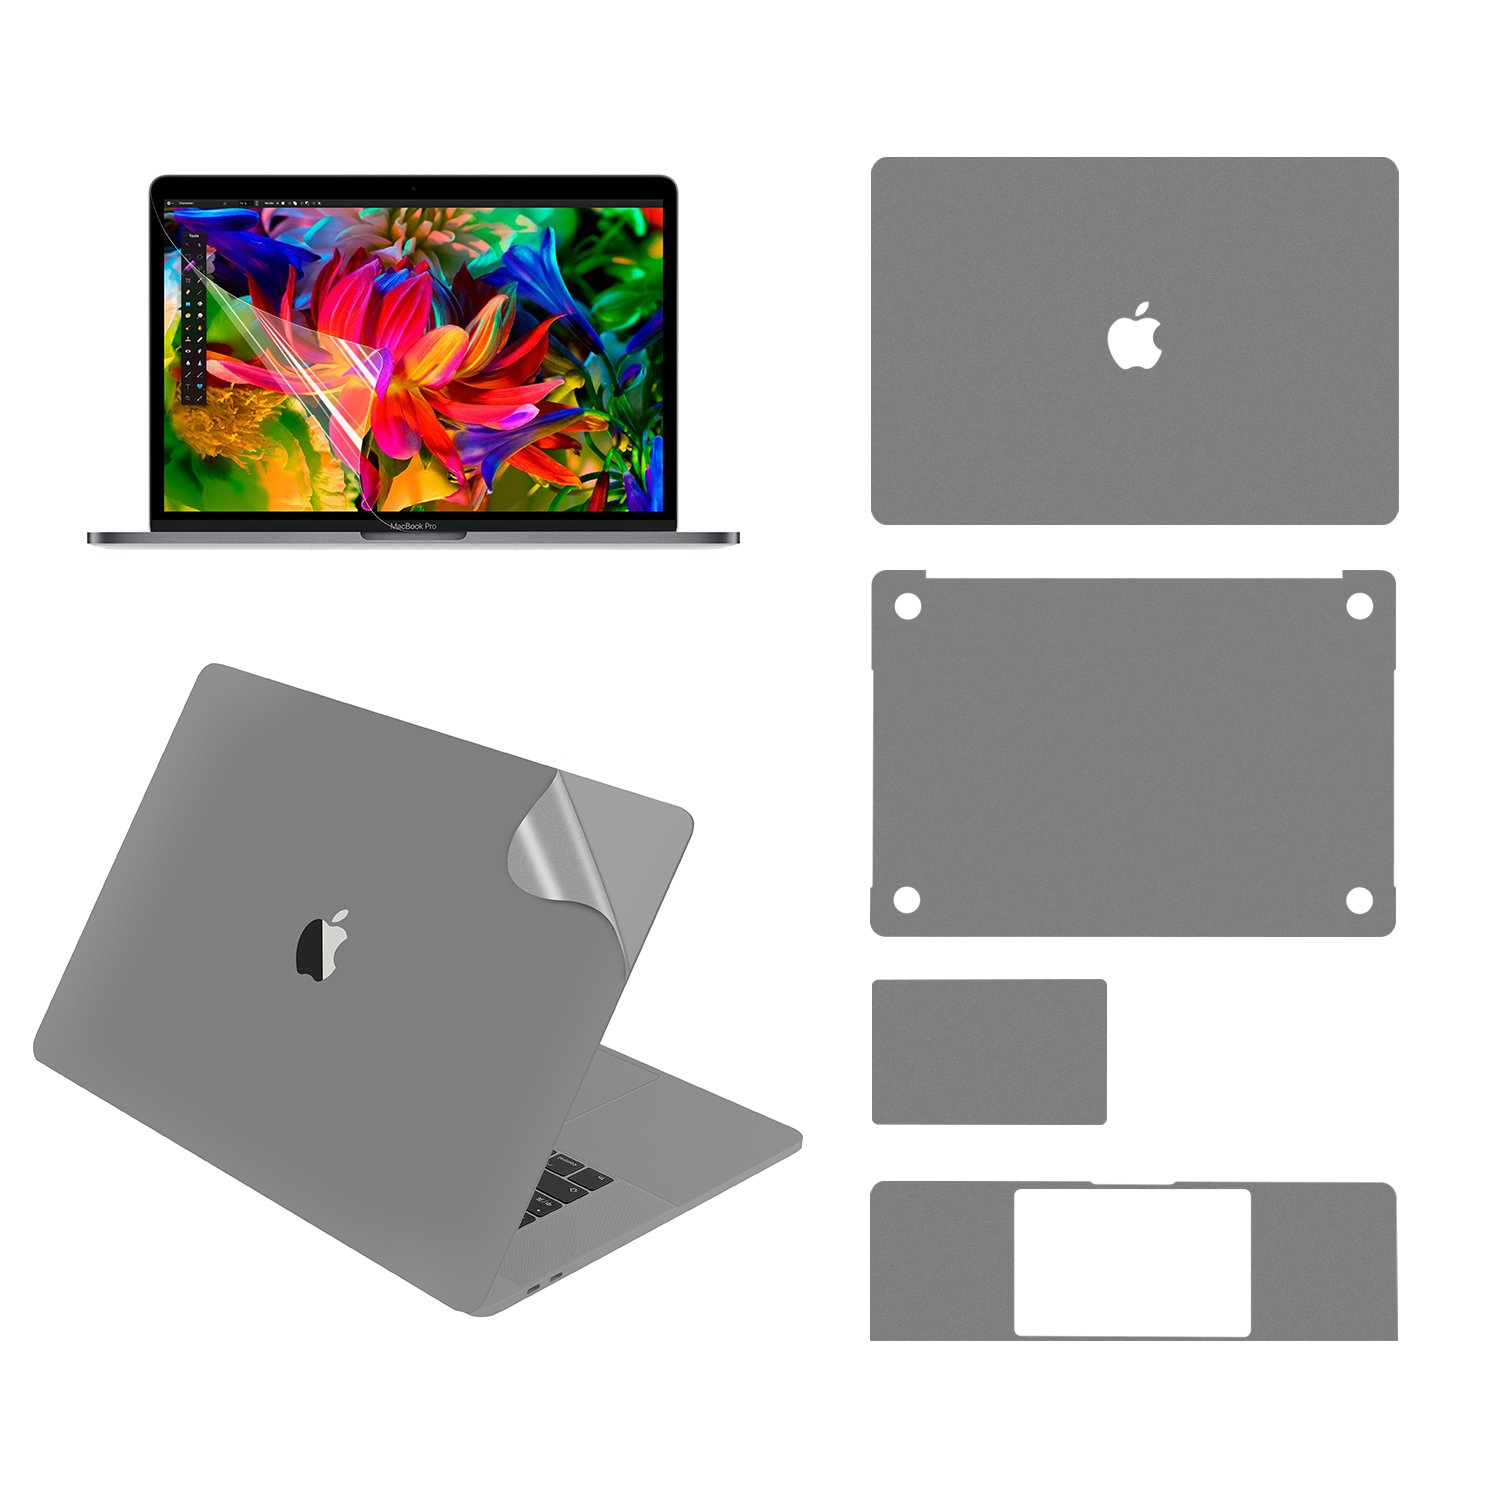 LENTION Full Body Skin for MacBook Pro (15-inch, 2016-2018), Model A1707/A1990, Full-Cover Protective Vinyl Decal Stickers (Top/Bottom/Touchpad/Palm Rest) + Screen Protector (Space Gray) by LENTION (Image #1)